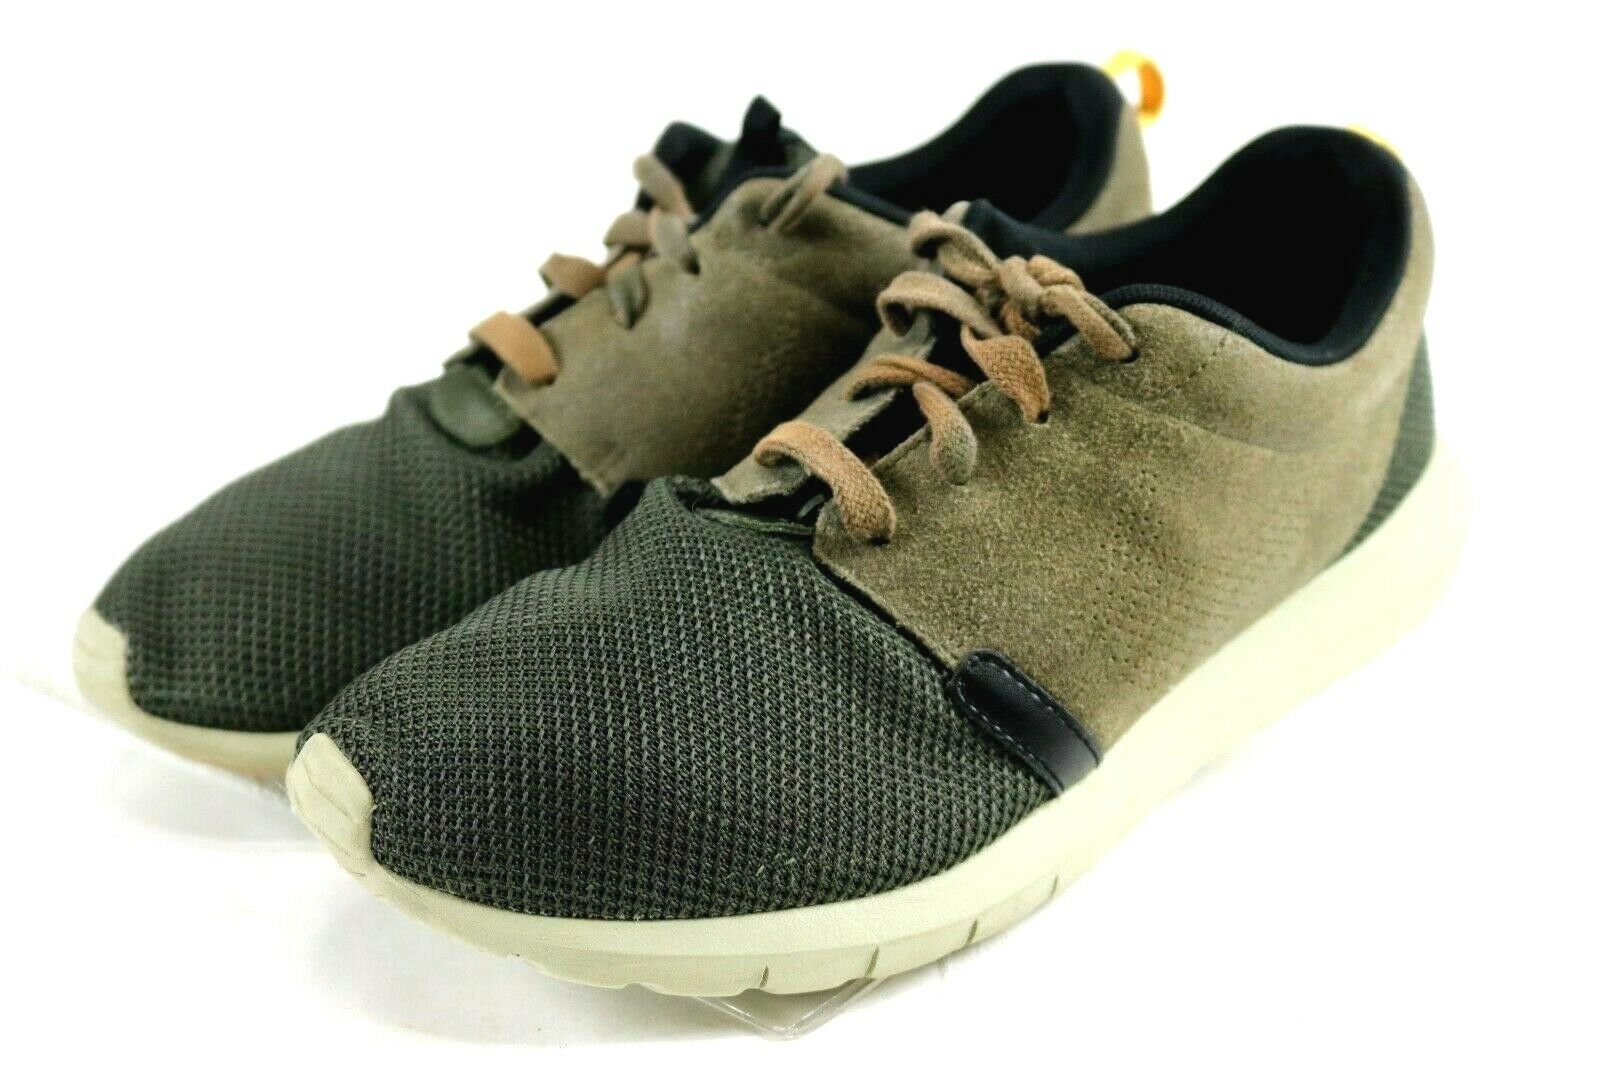 Nike Rosherun NM FB  120 Men's Trainer shoes Size 10 Olive Green Brown